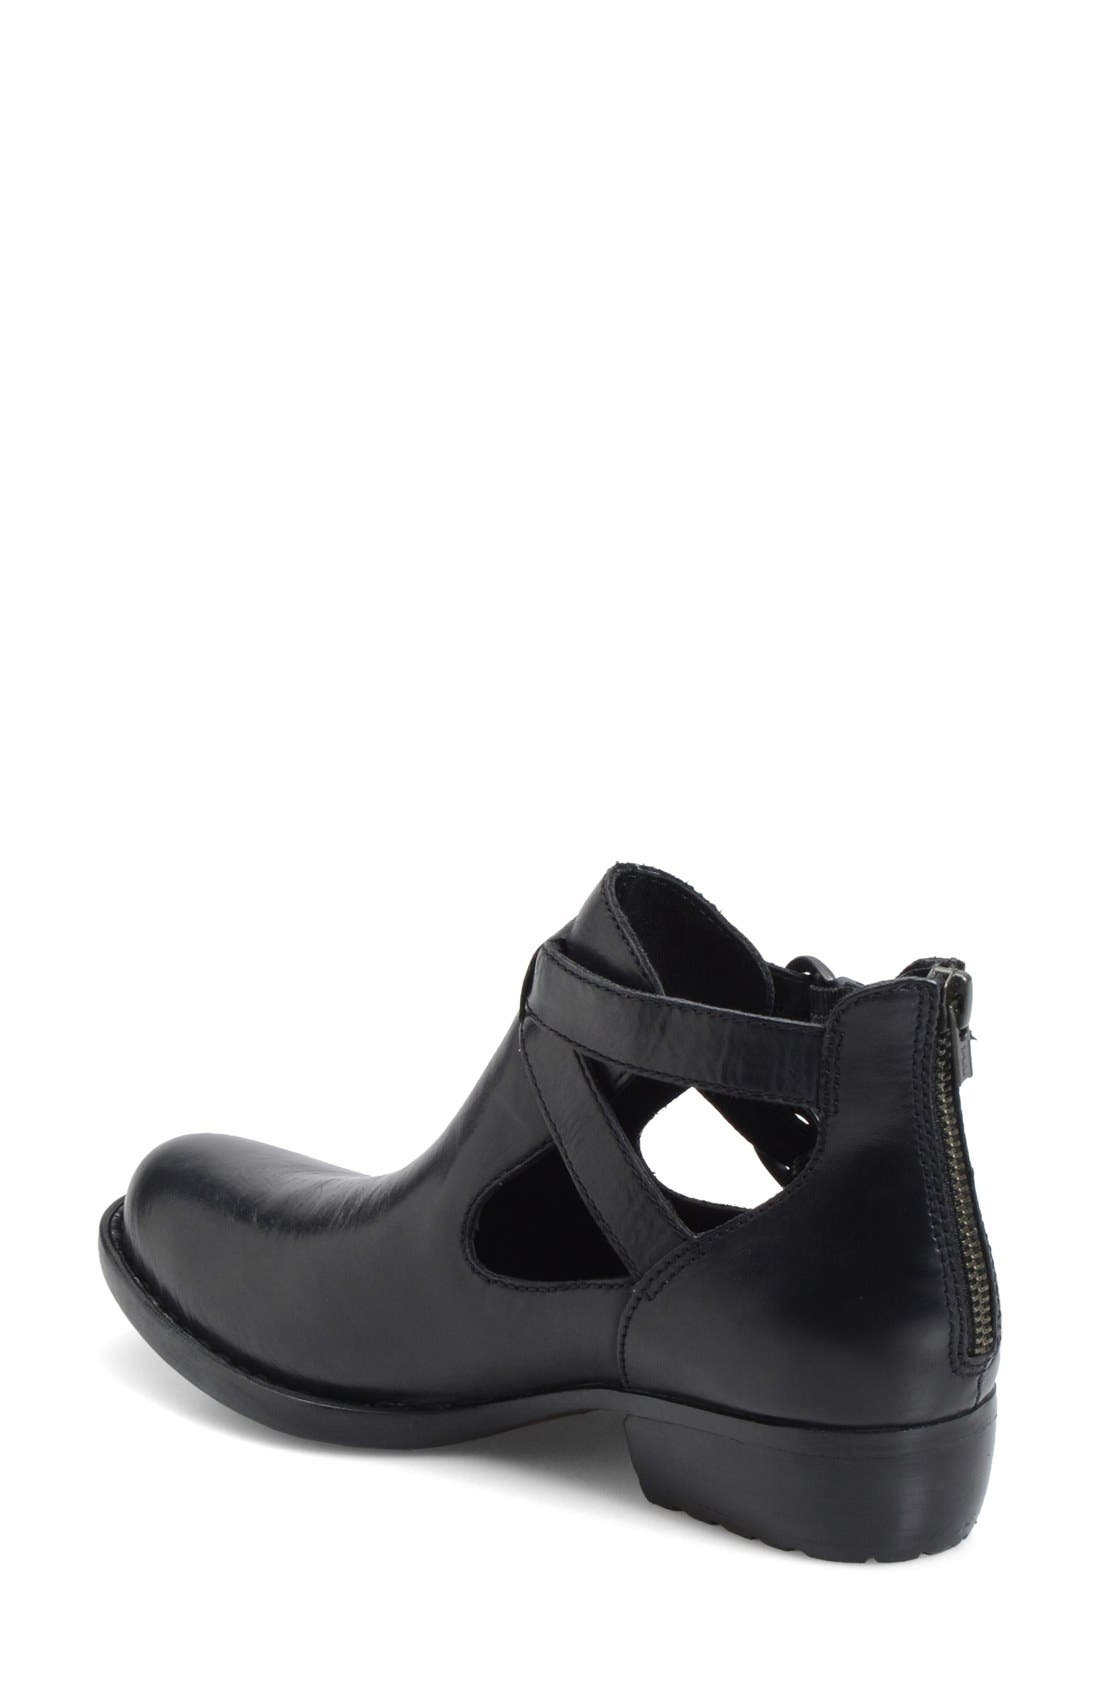 'Kamilla' Cutout Ankle Boot,                             Alternate thumbnail 2, color,                             001